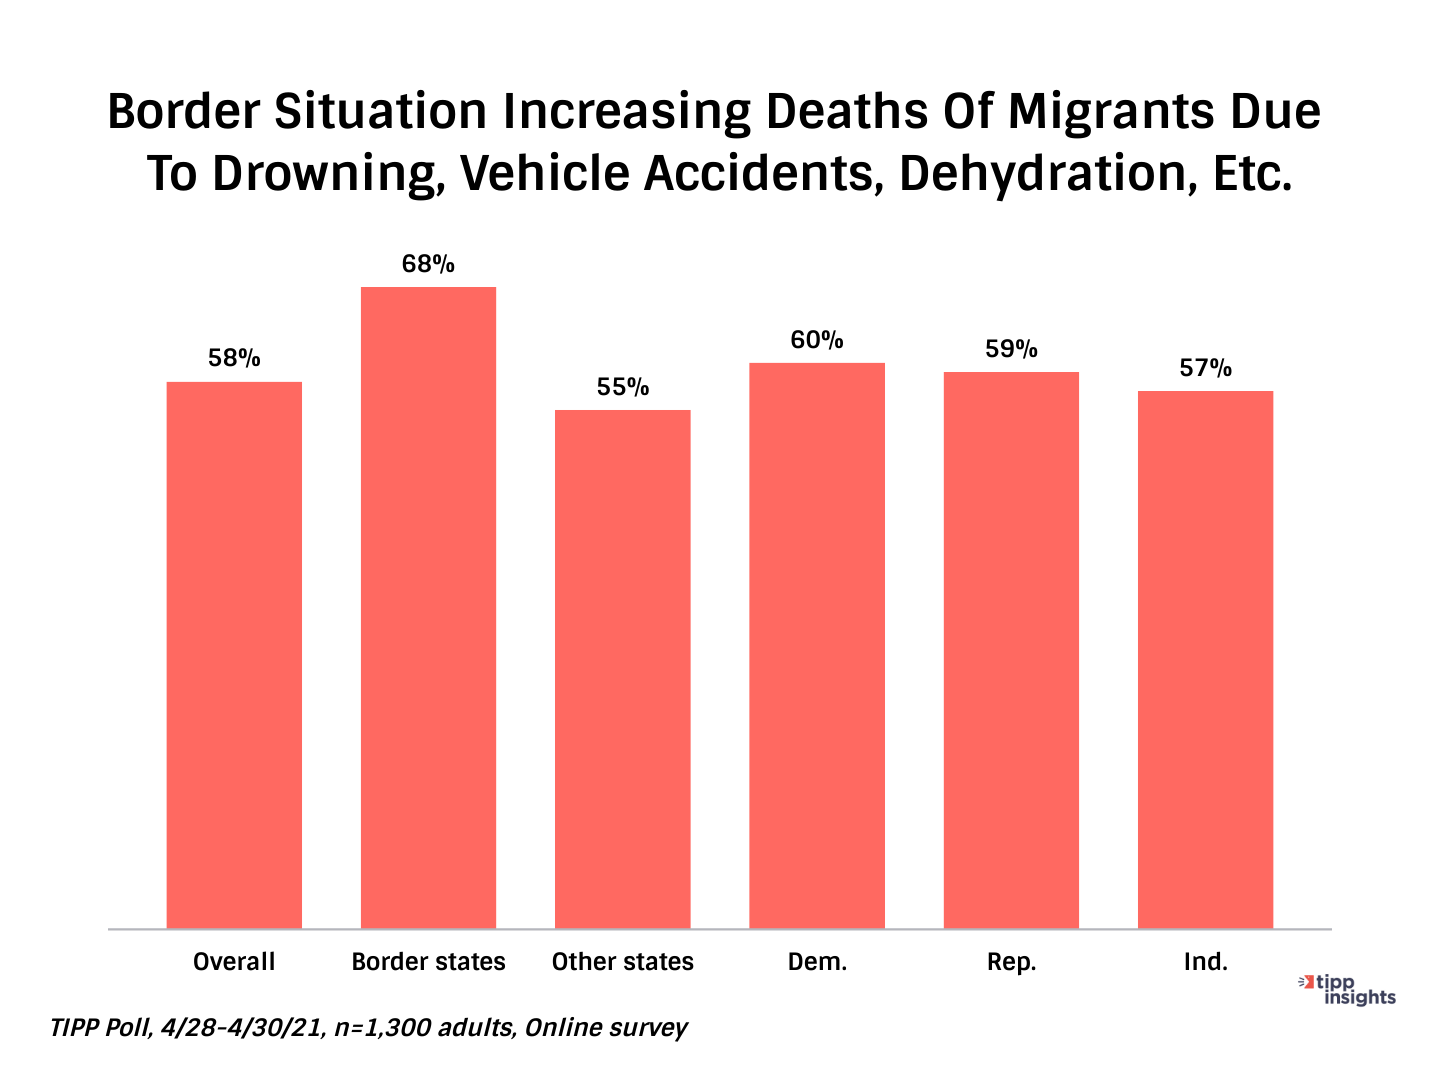 TIPP Poll Results: Increase of Deaths of Migrants - Chart